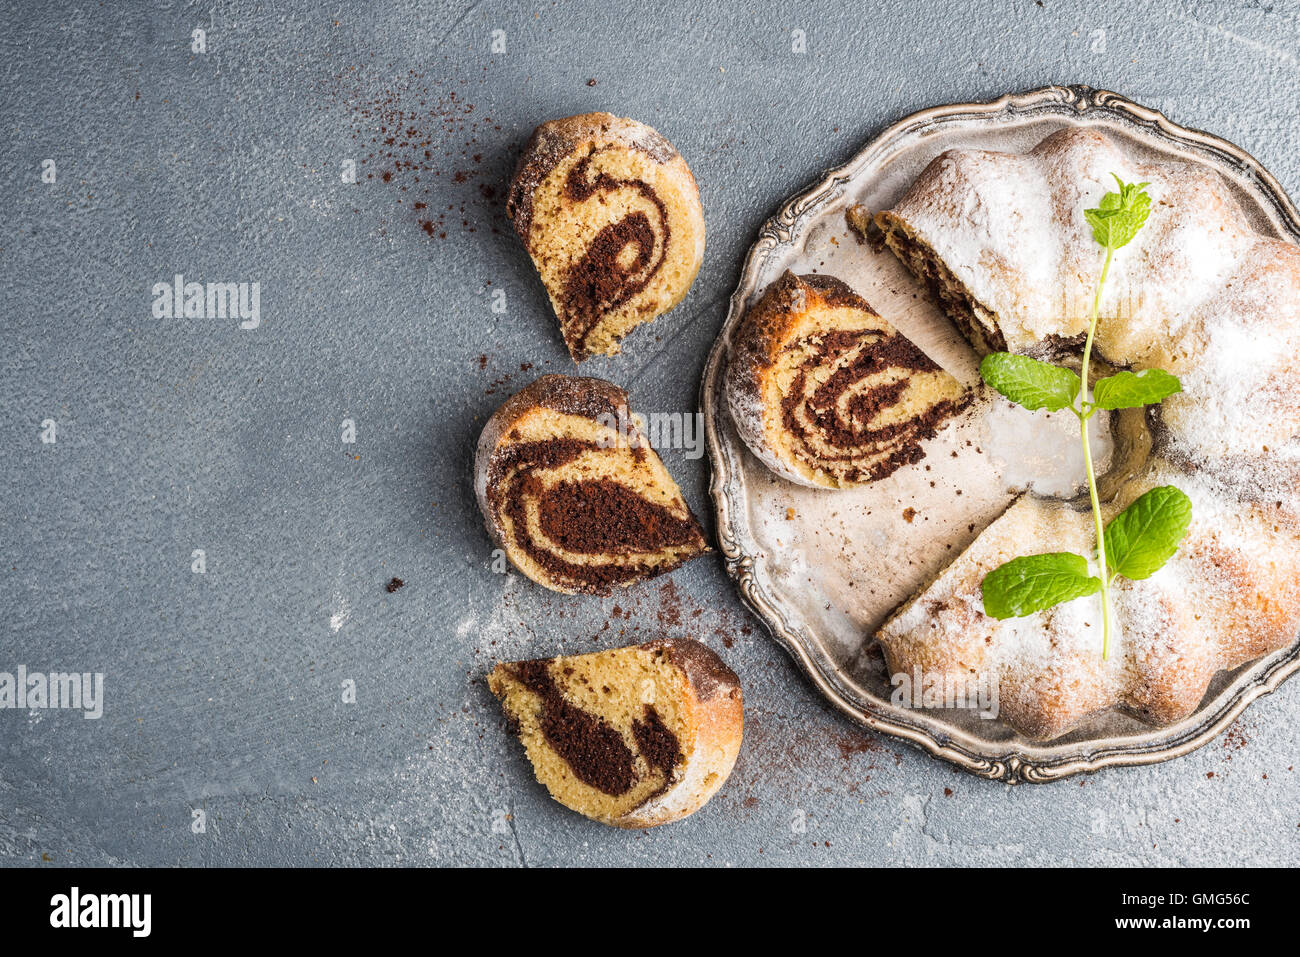 Zebra bundt cake cut into pieces and mint leaves - Stock Image